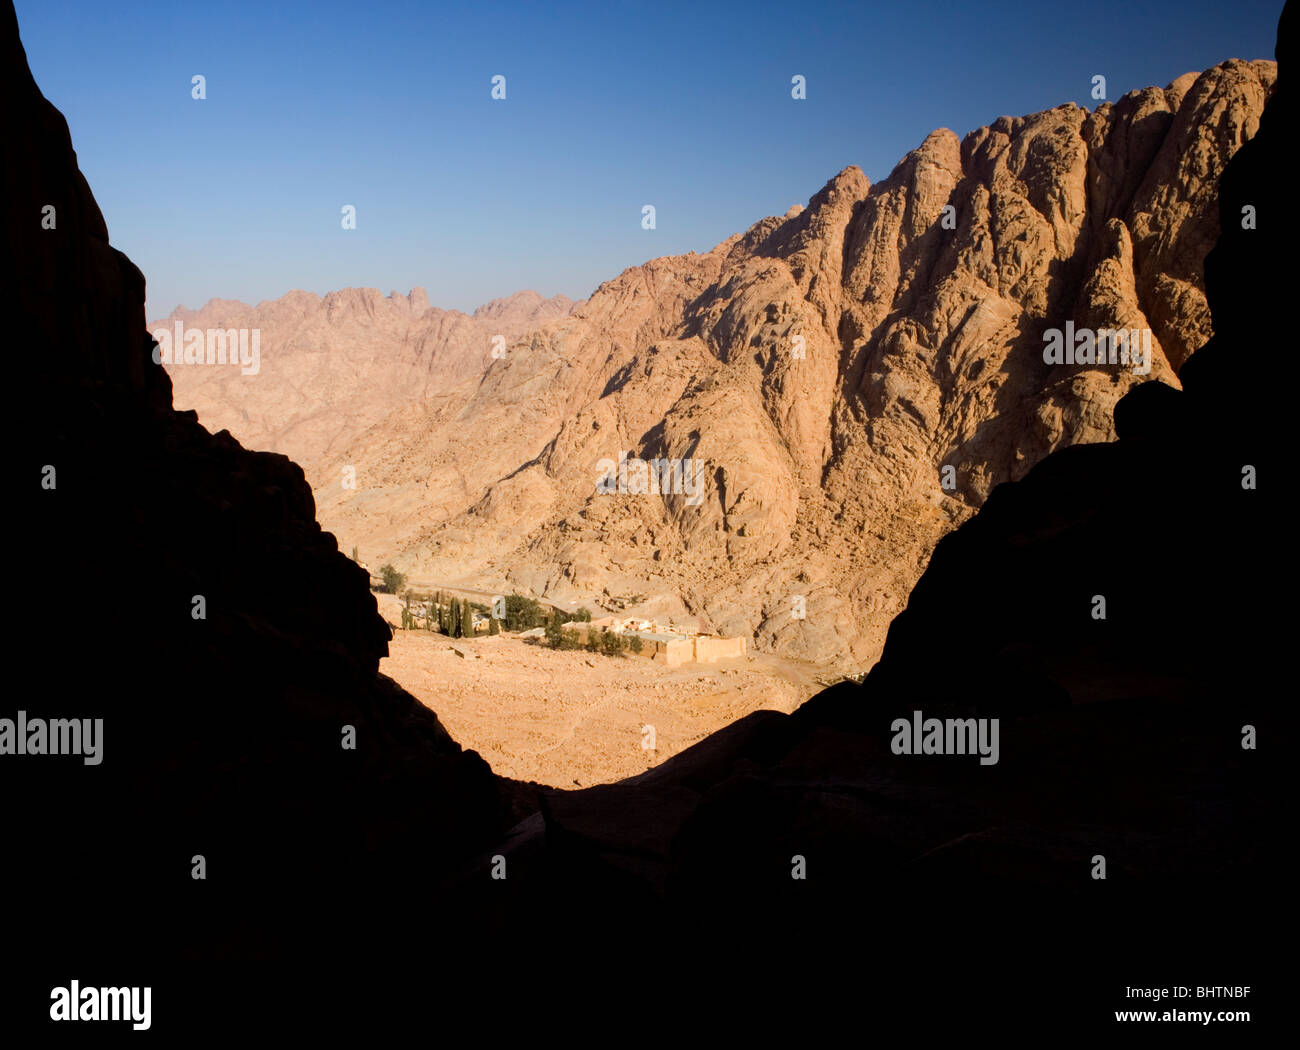 View of the St. Catherine Monastery from the trail to the summit of Mount Sinai, St.Katherine, Egypt. - Stock Image